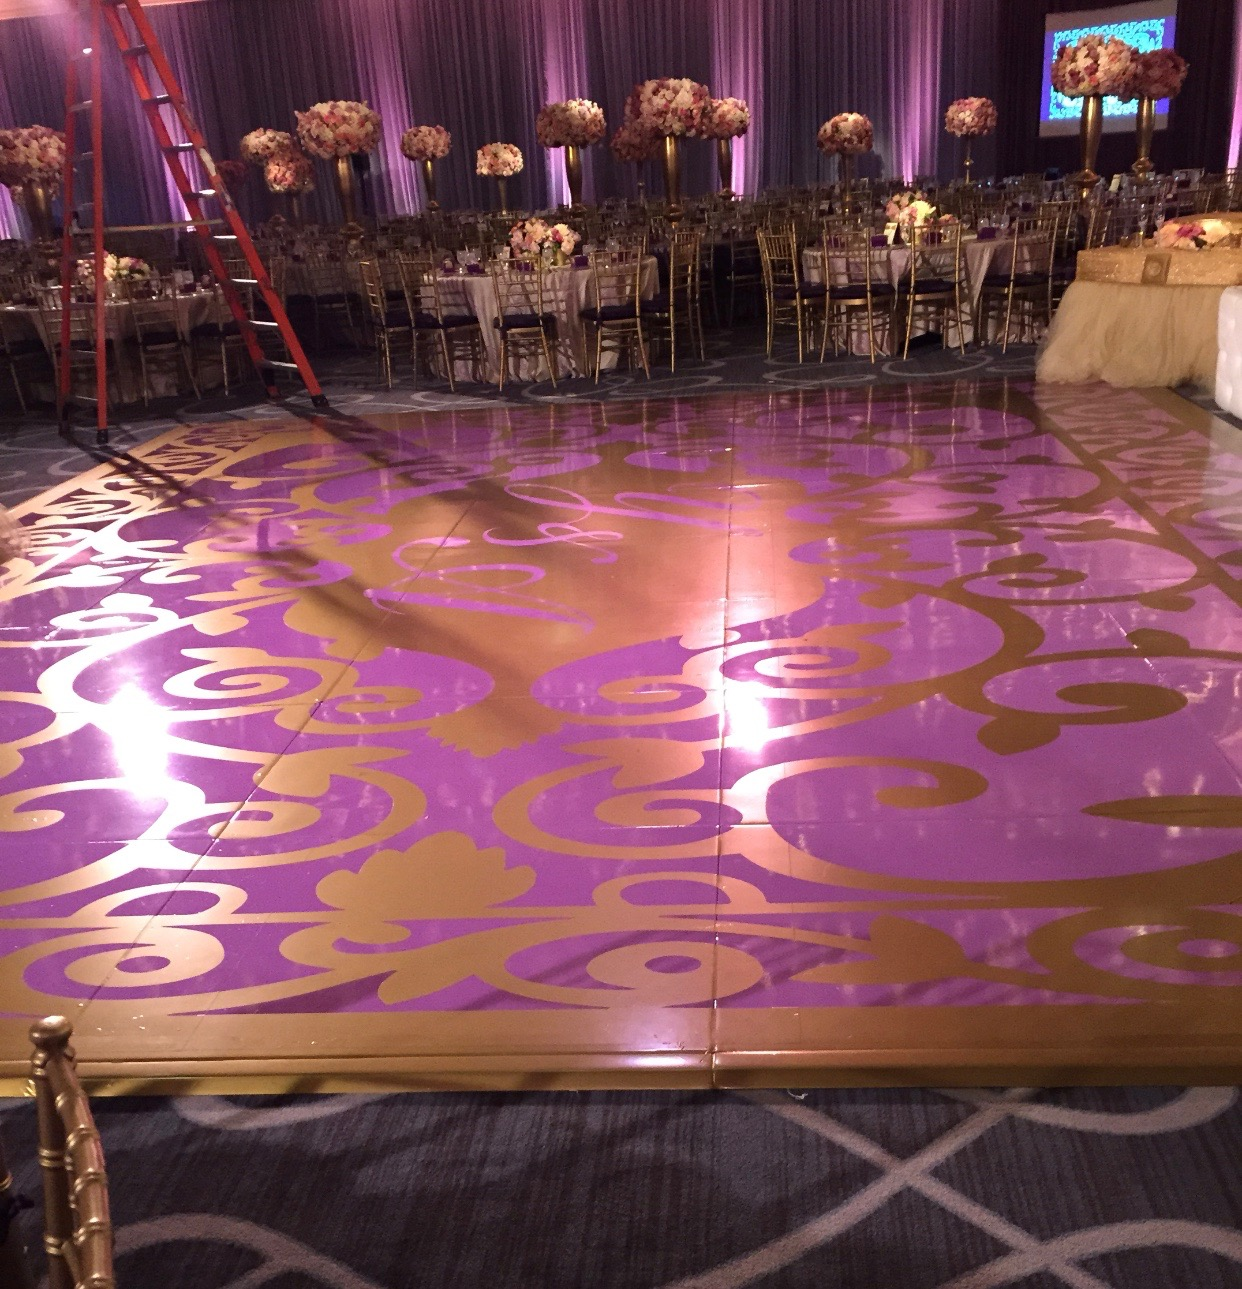 Gold Dance Floor w/ Decal